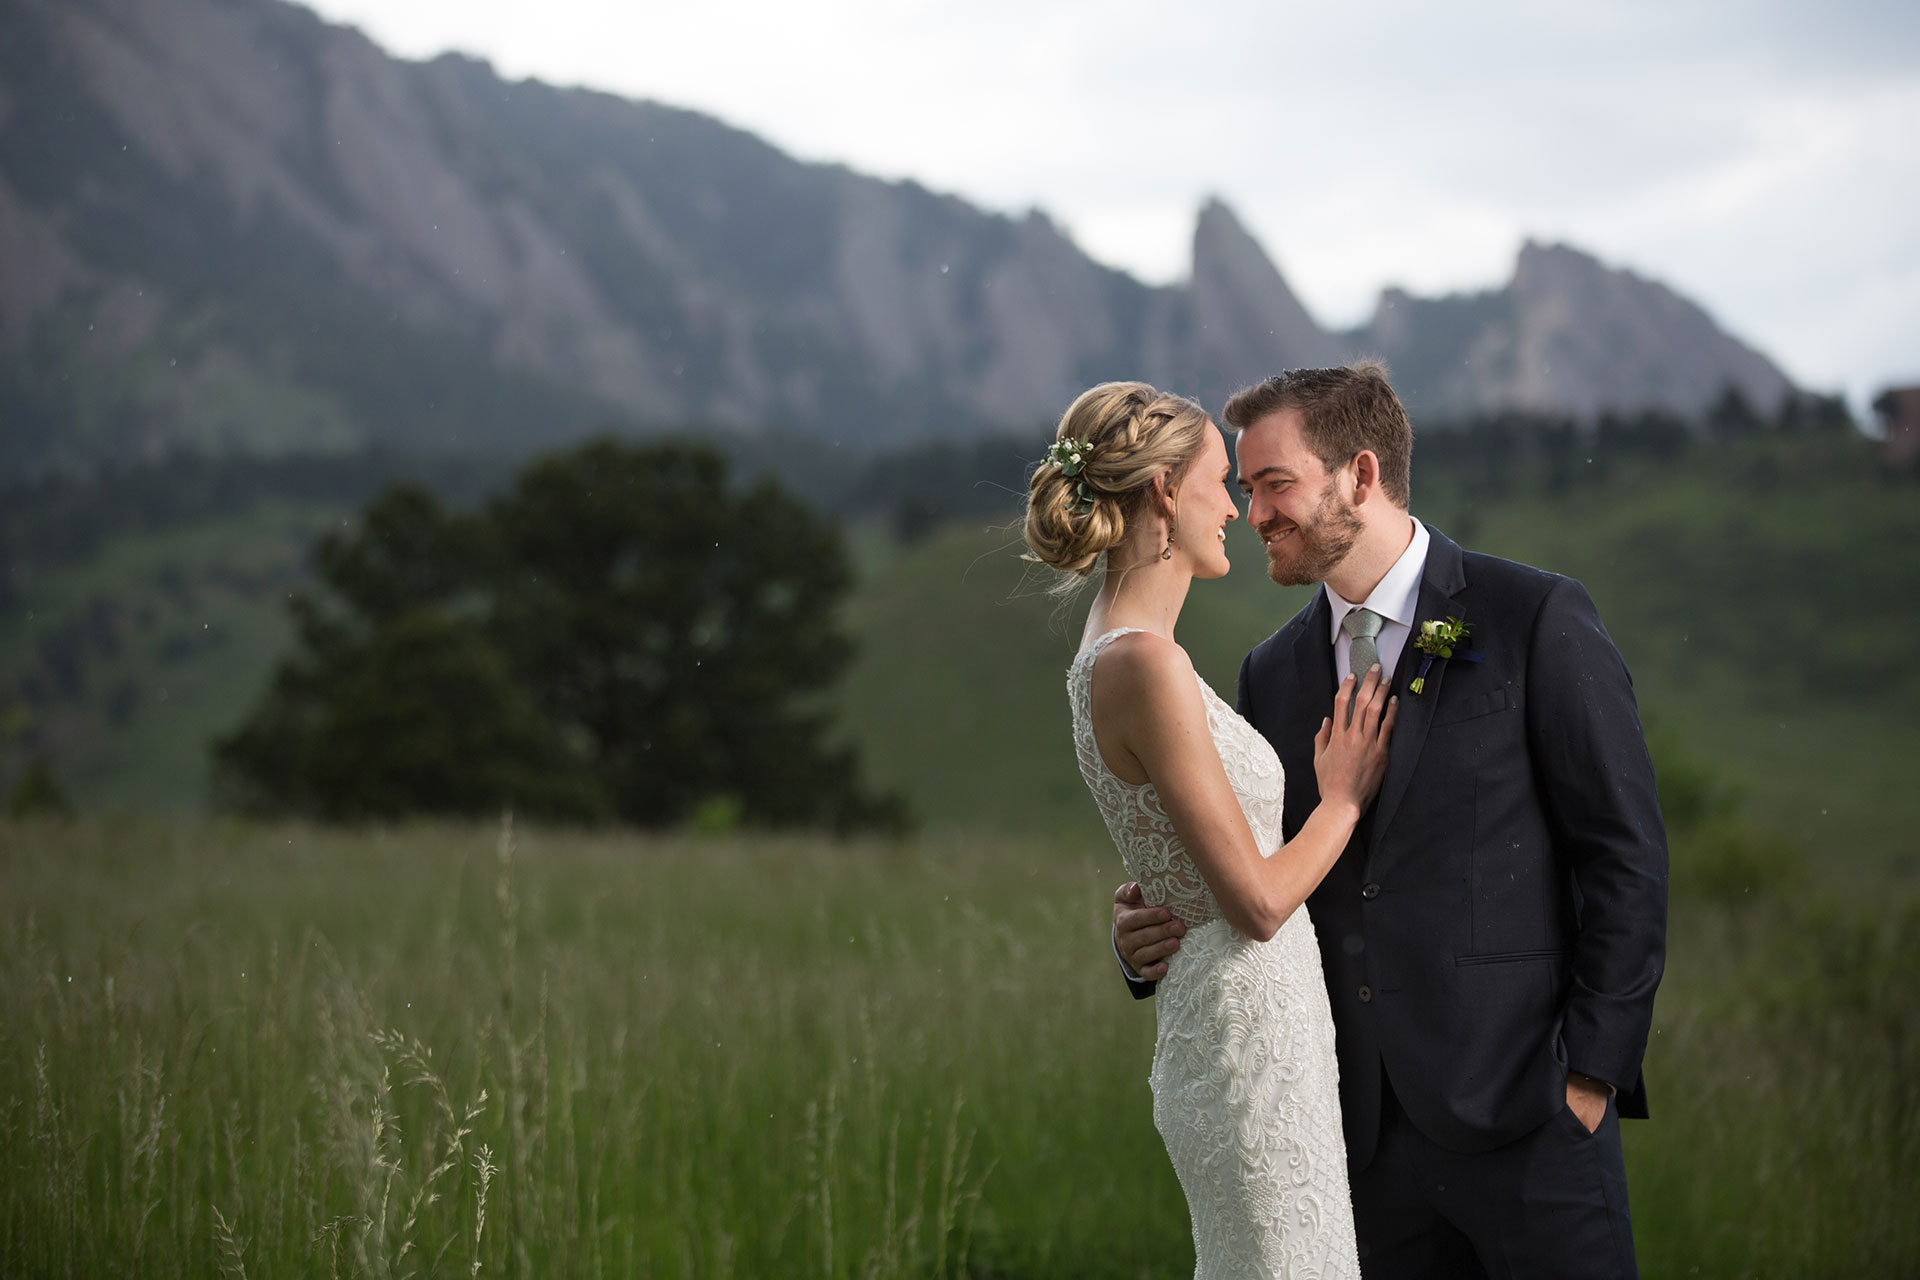 Wedding Photography in Colorado